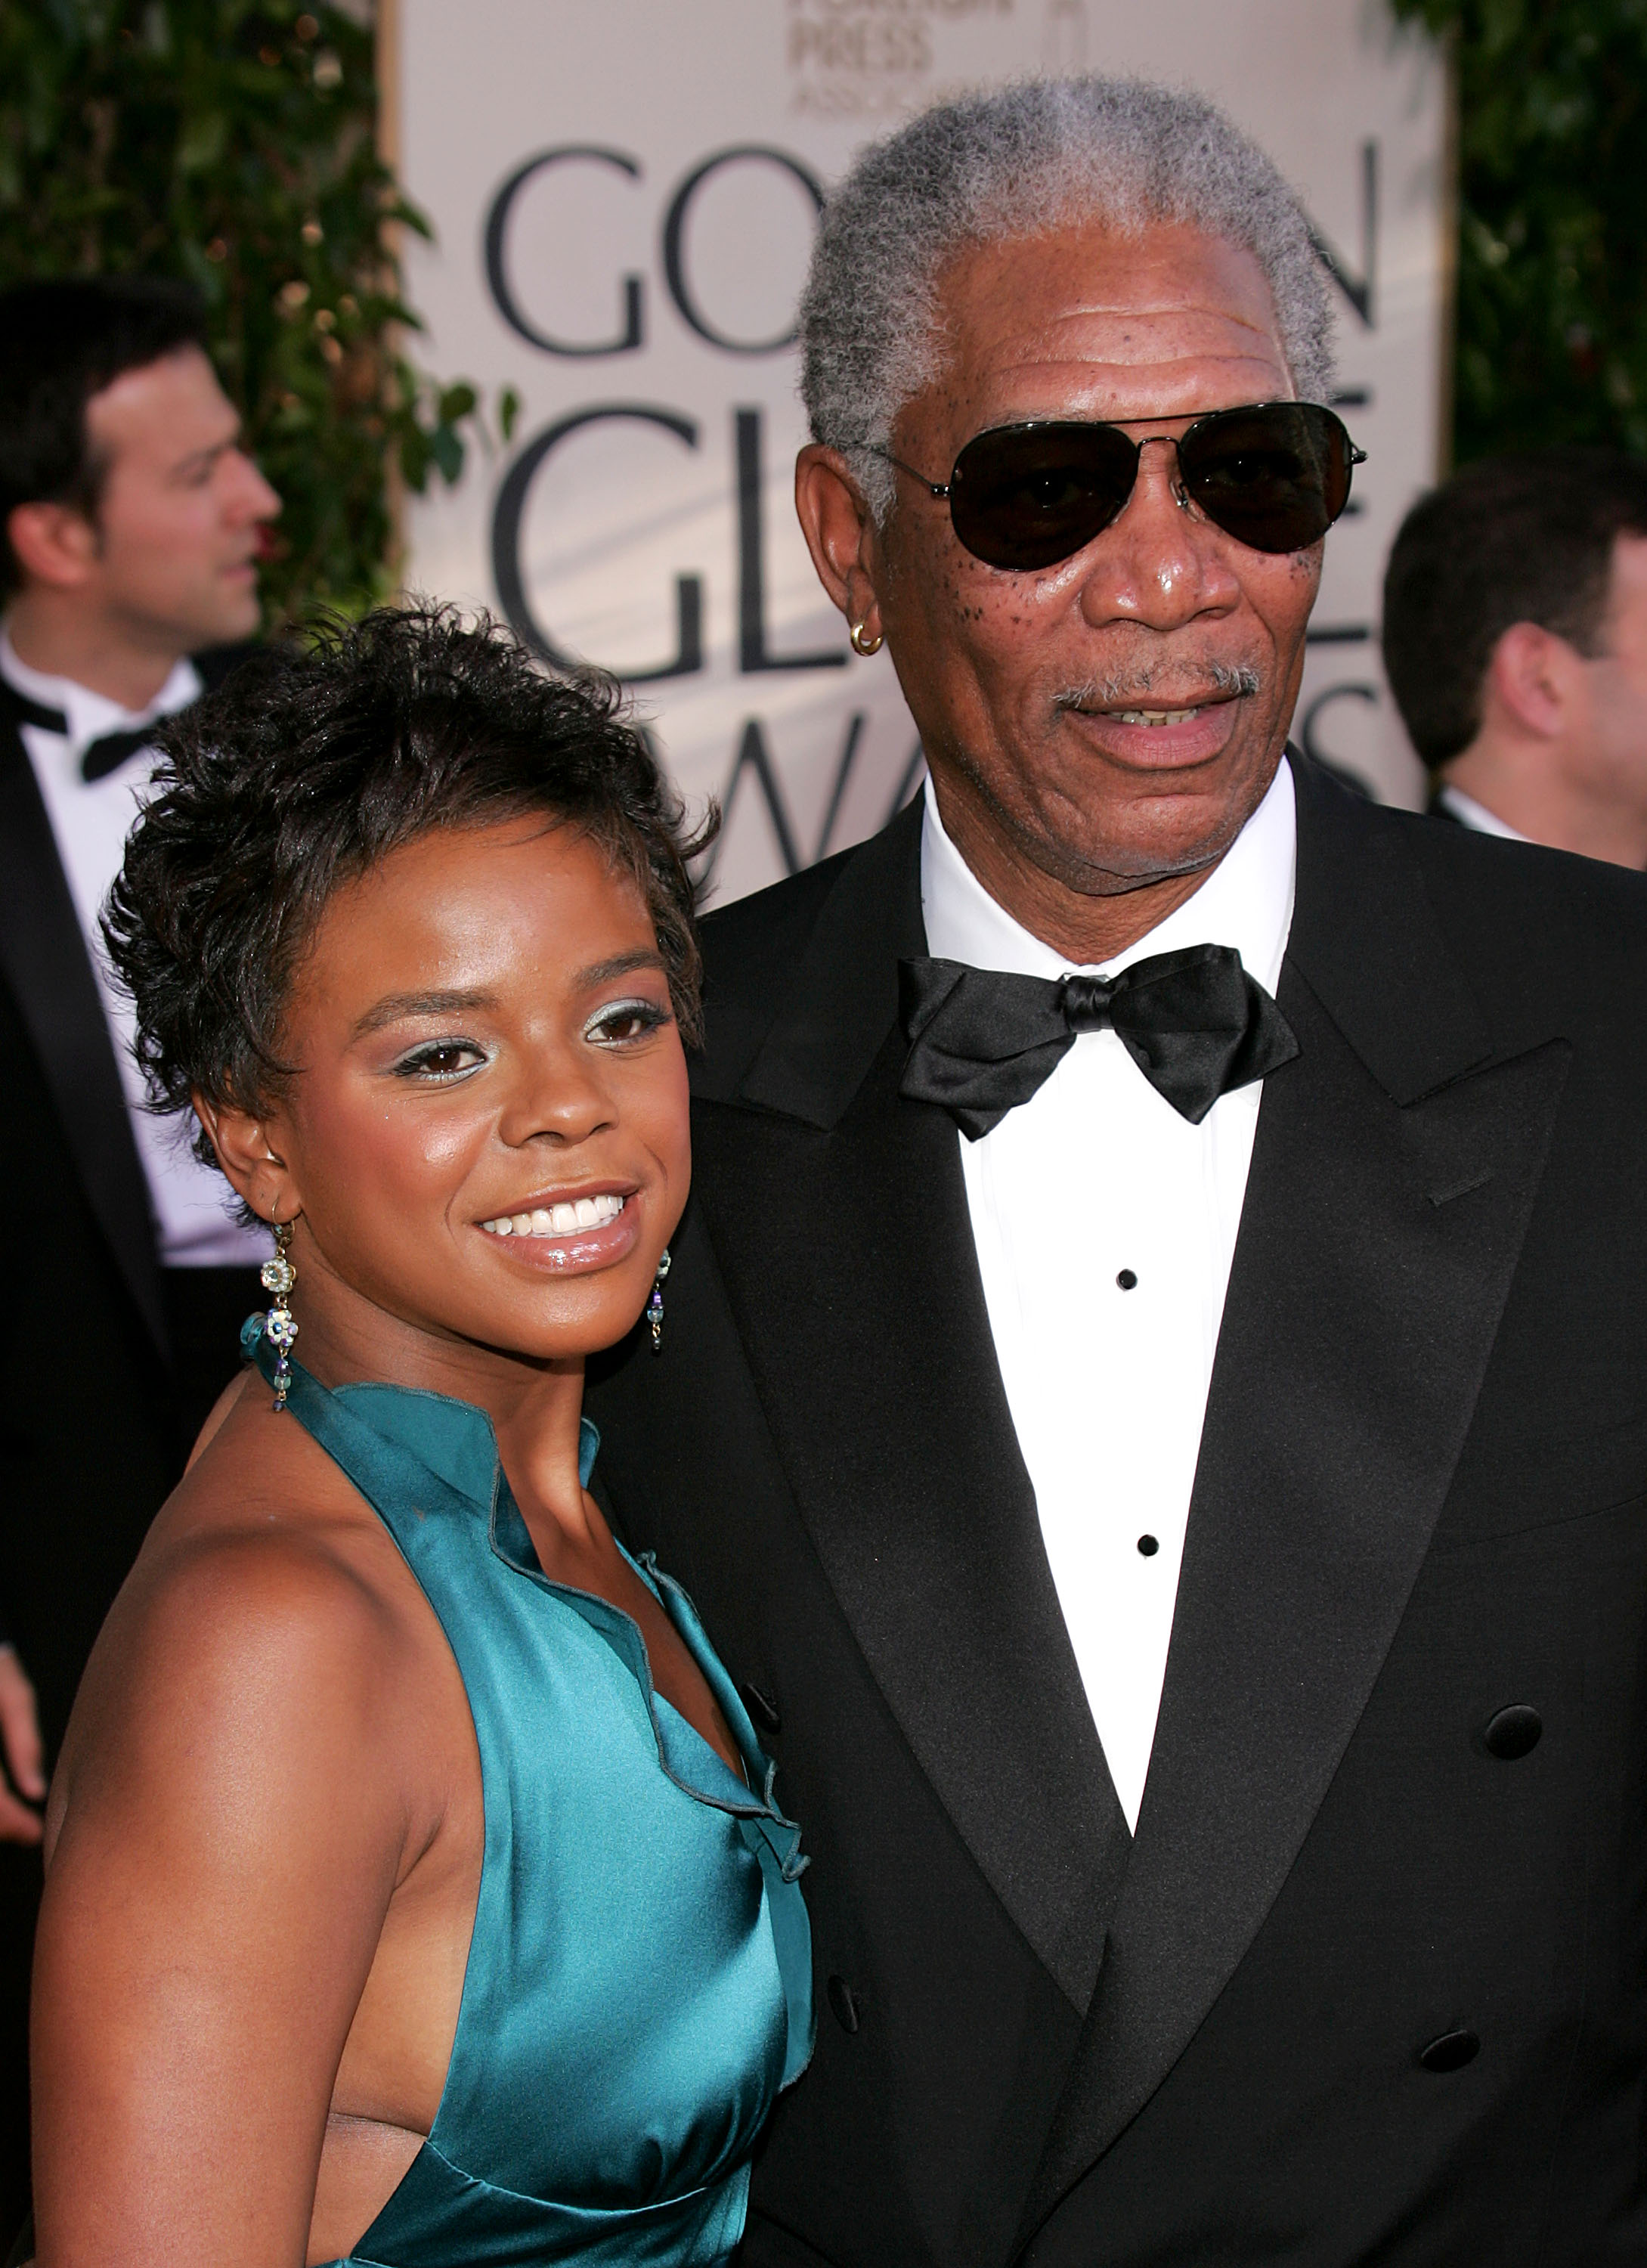 Actor Morgan Freeman and granddaughter E'Dena Hines arrive to the 62nd Annual Golden Globe Awards at the Beverly Hilton Hotel January 16, 2005 in Beverly Hills, California.